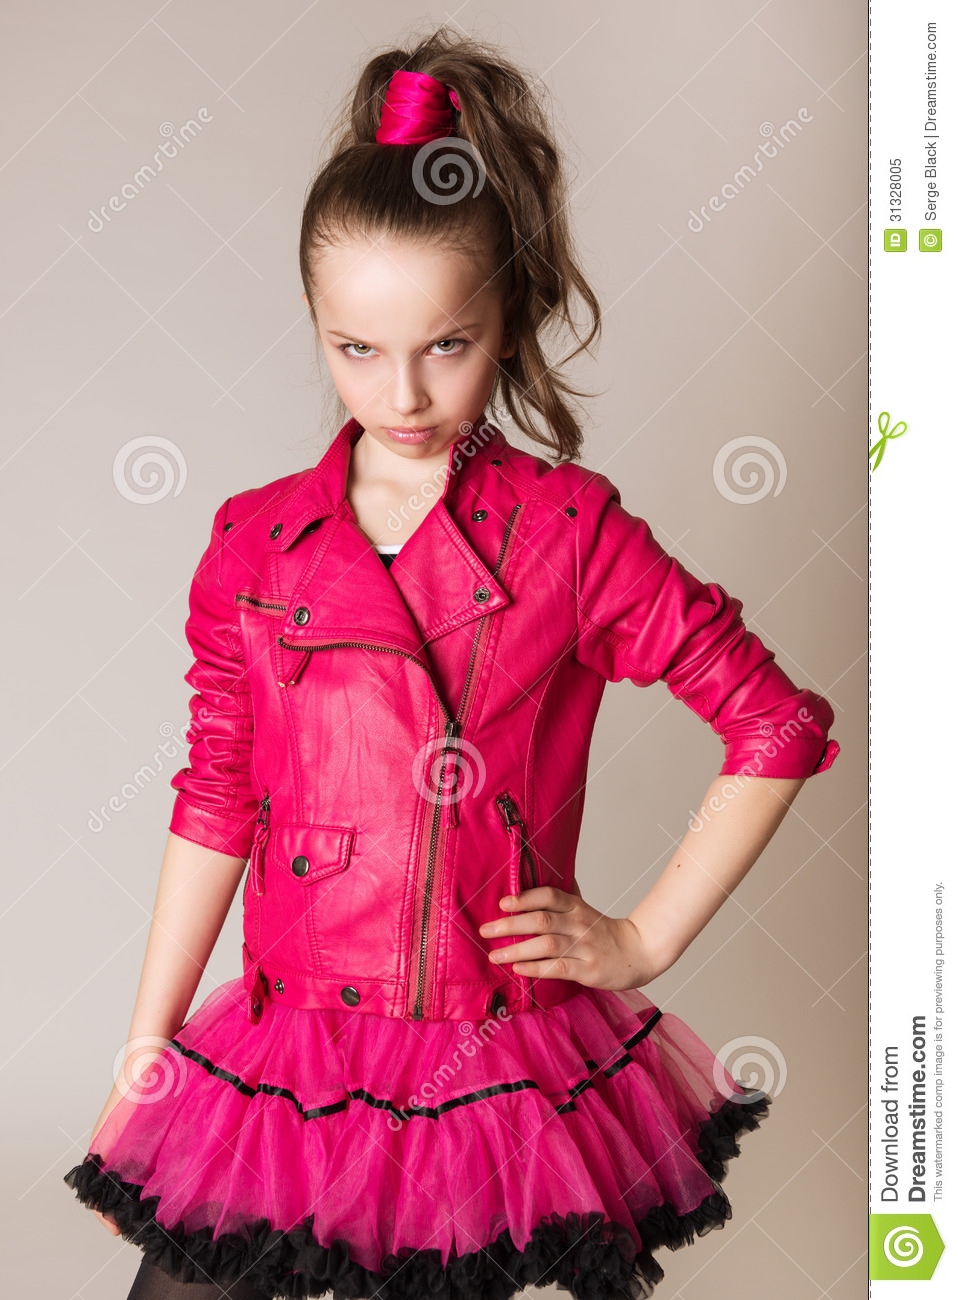 Fashion Little Girl In Glam Rock Style Royalty Free Stock Photo Image 31328005